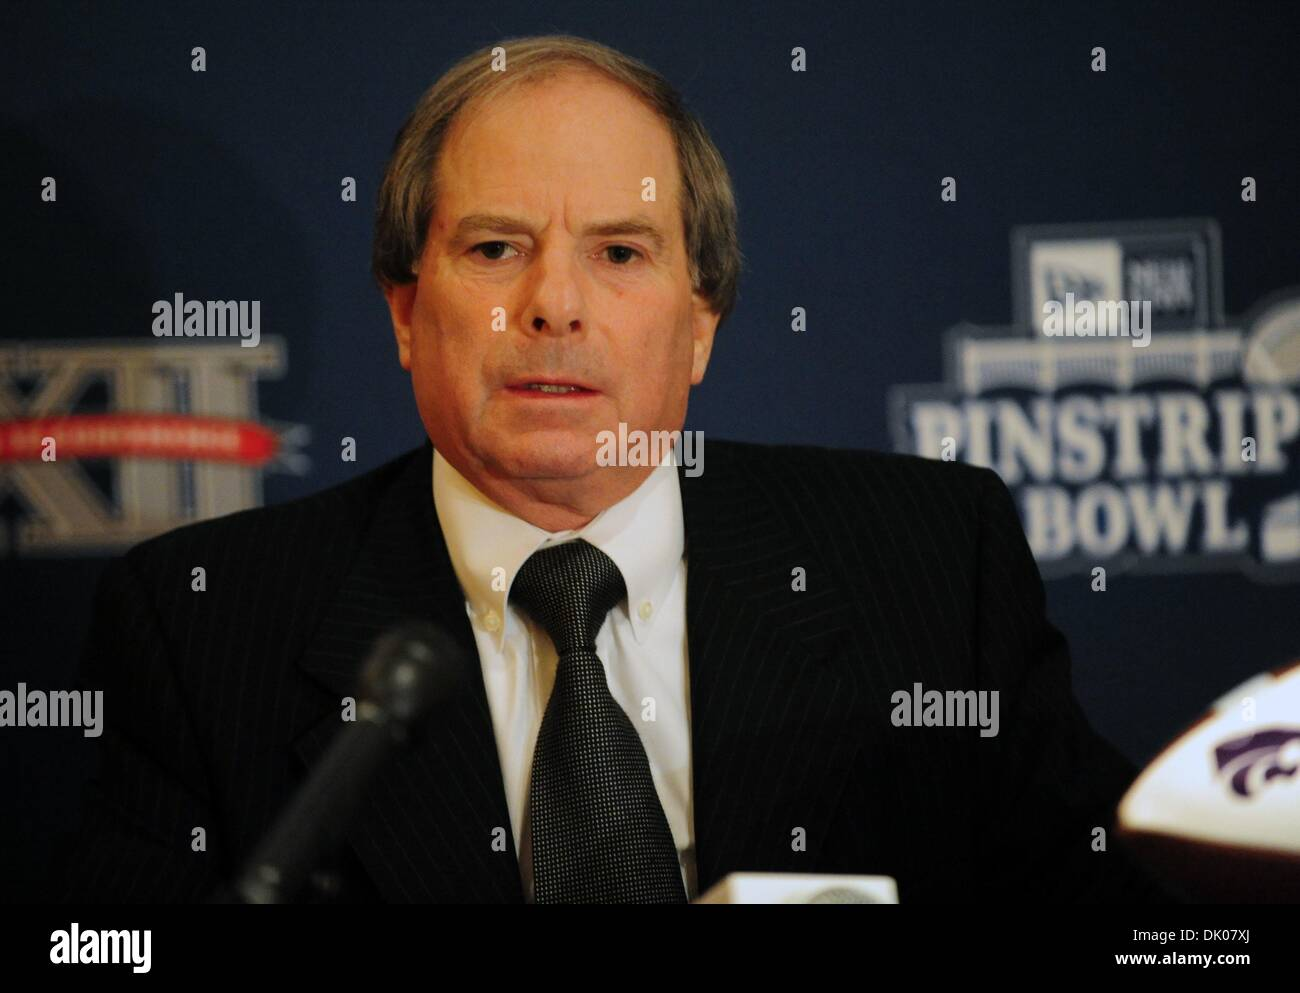 Dec. 22, 2010 - Manhattan, New York, U.S. - New York Yankees Chief Operating Officer LONN TROST speaks as The New Era Pinstripe Bowl announces that it will donate over 6,000 tickets to New York City - based charitable and community groups for the inaugural bowl game to be played on December 30, 2010 at Yankee Stadium. (Credit Image: © Bryan Smith/ZUMAPRESS.com) - Stock Image